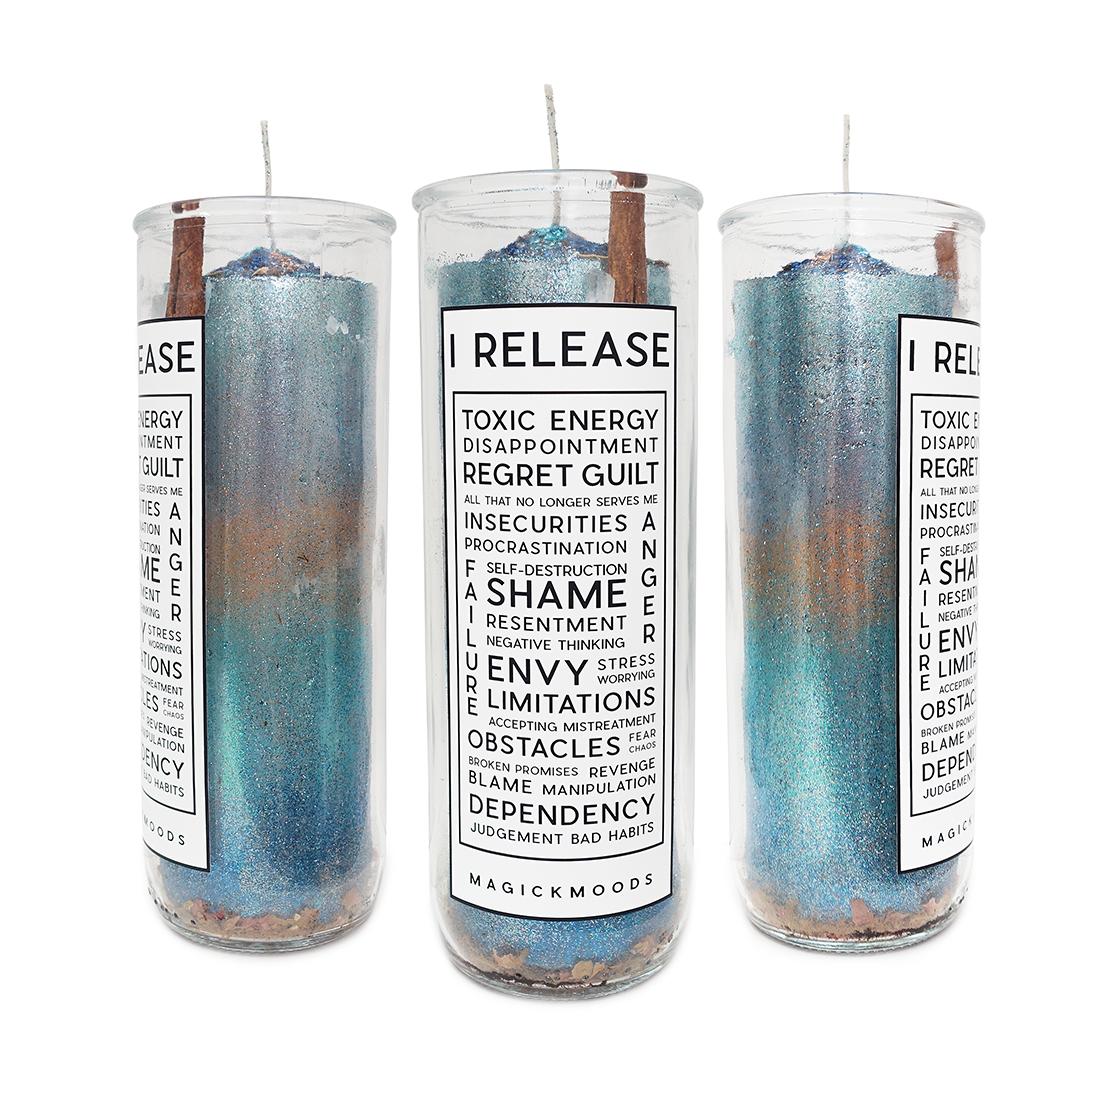 I Release 7-Day Meditation Candle - PREORDER - Ships by 12/15